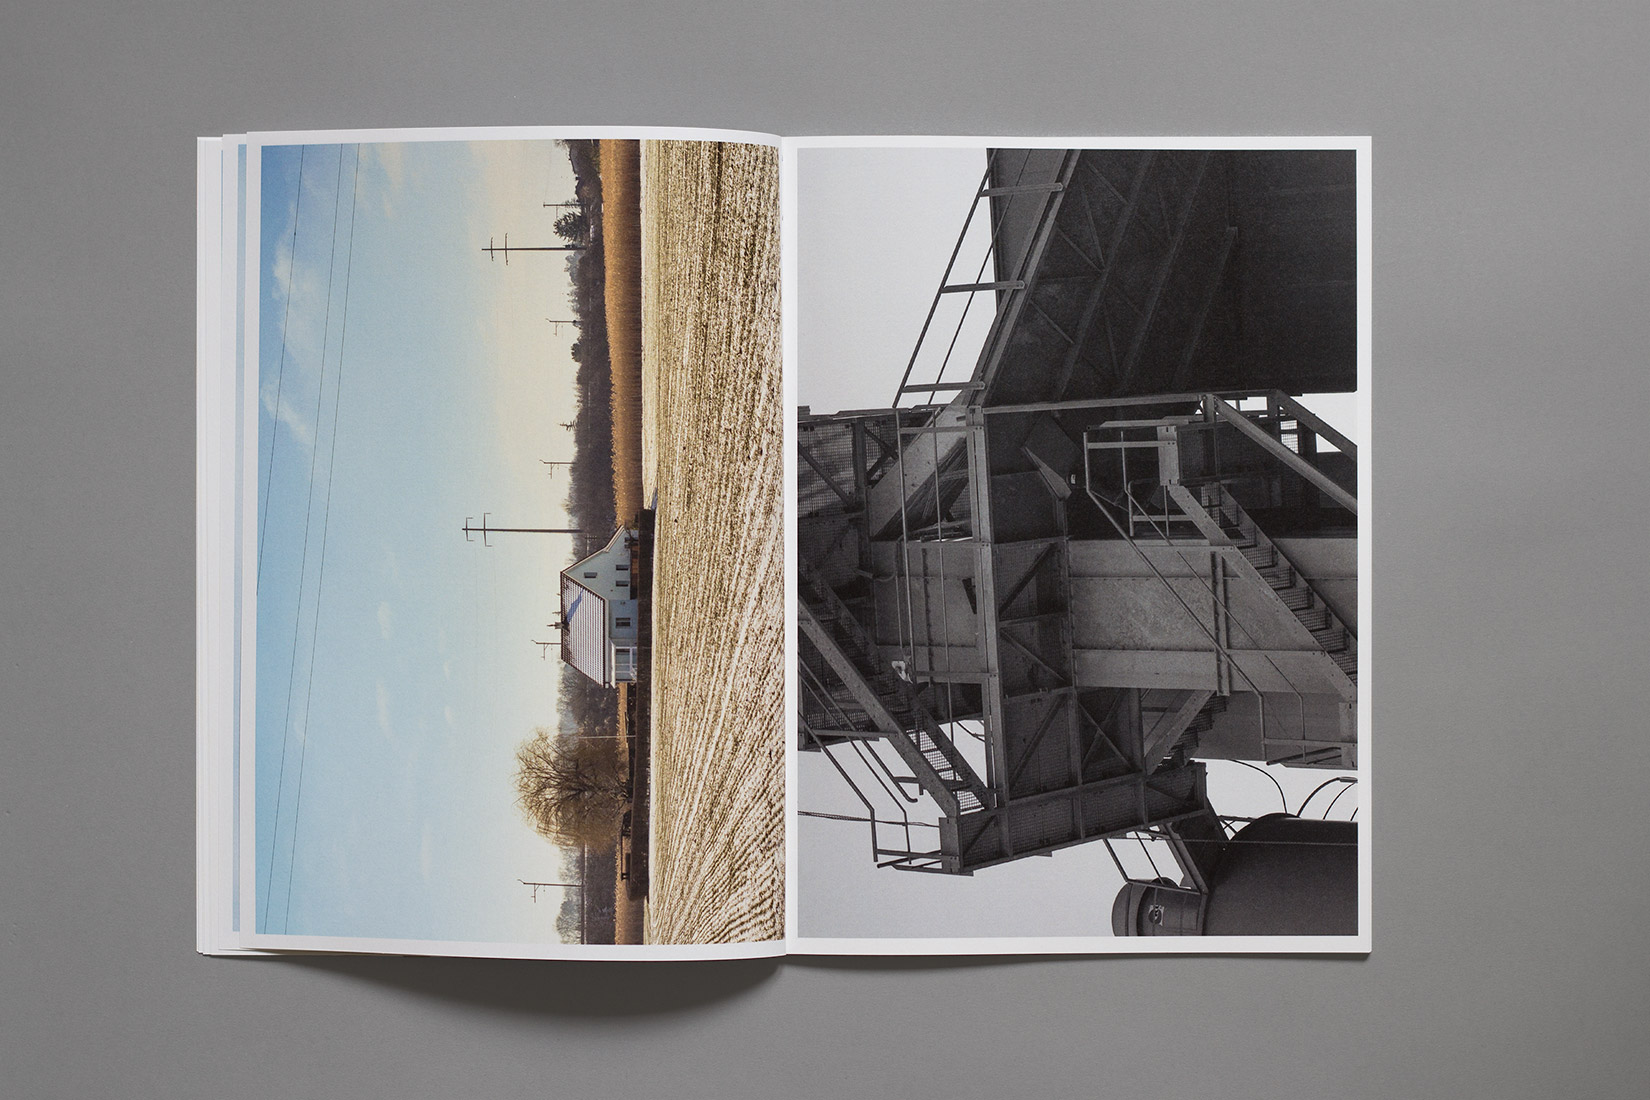 diploma, graphic design, book, Zihlbrücke, photography, house, field, factory